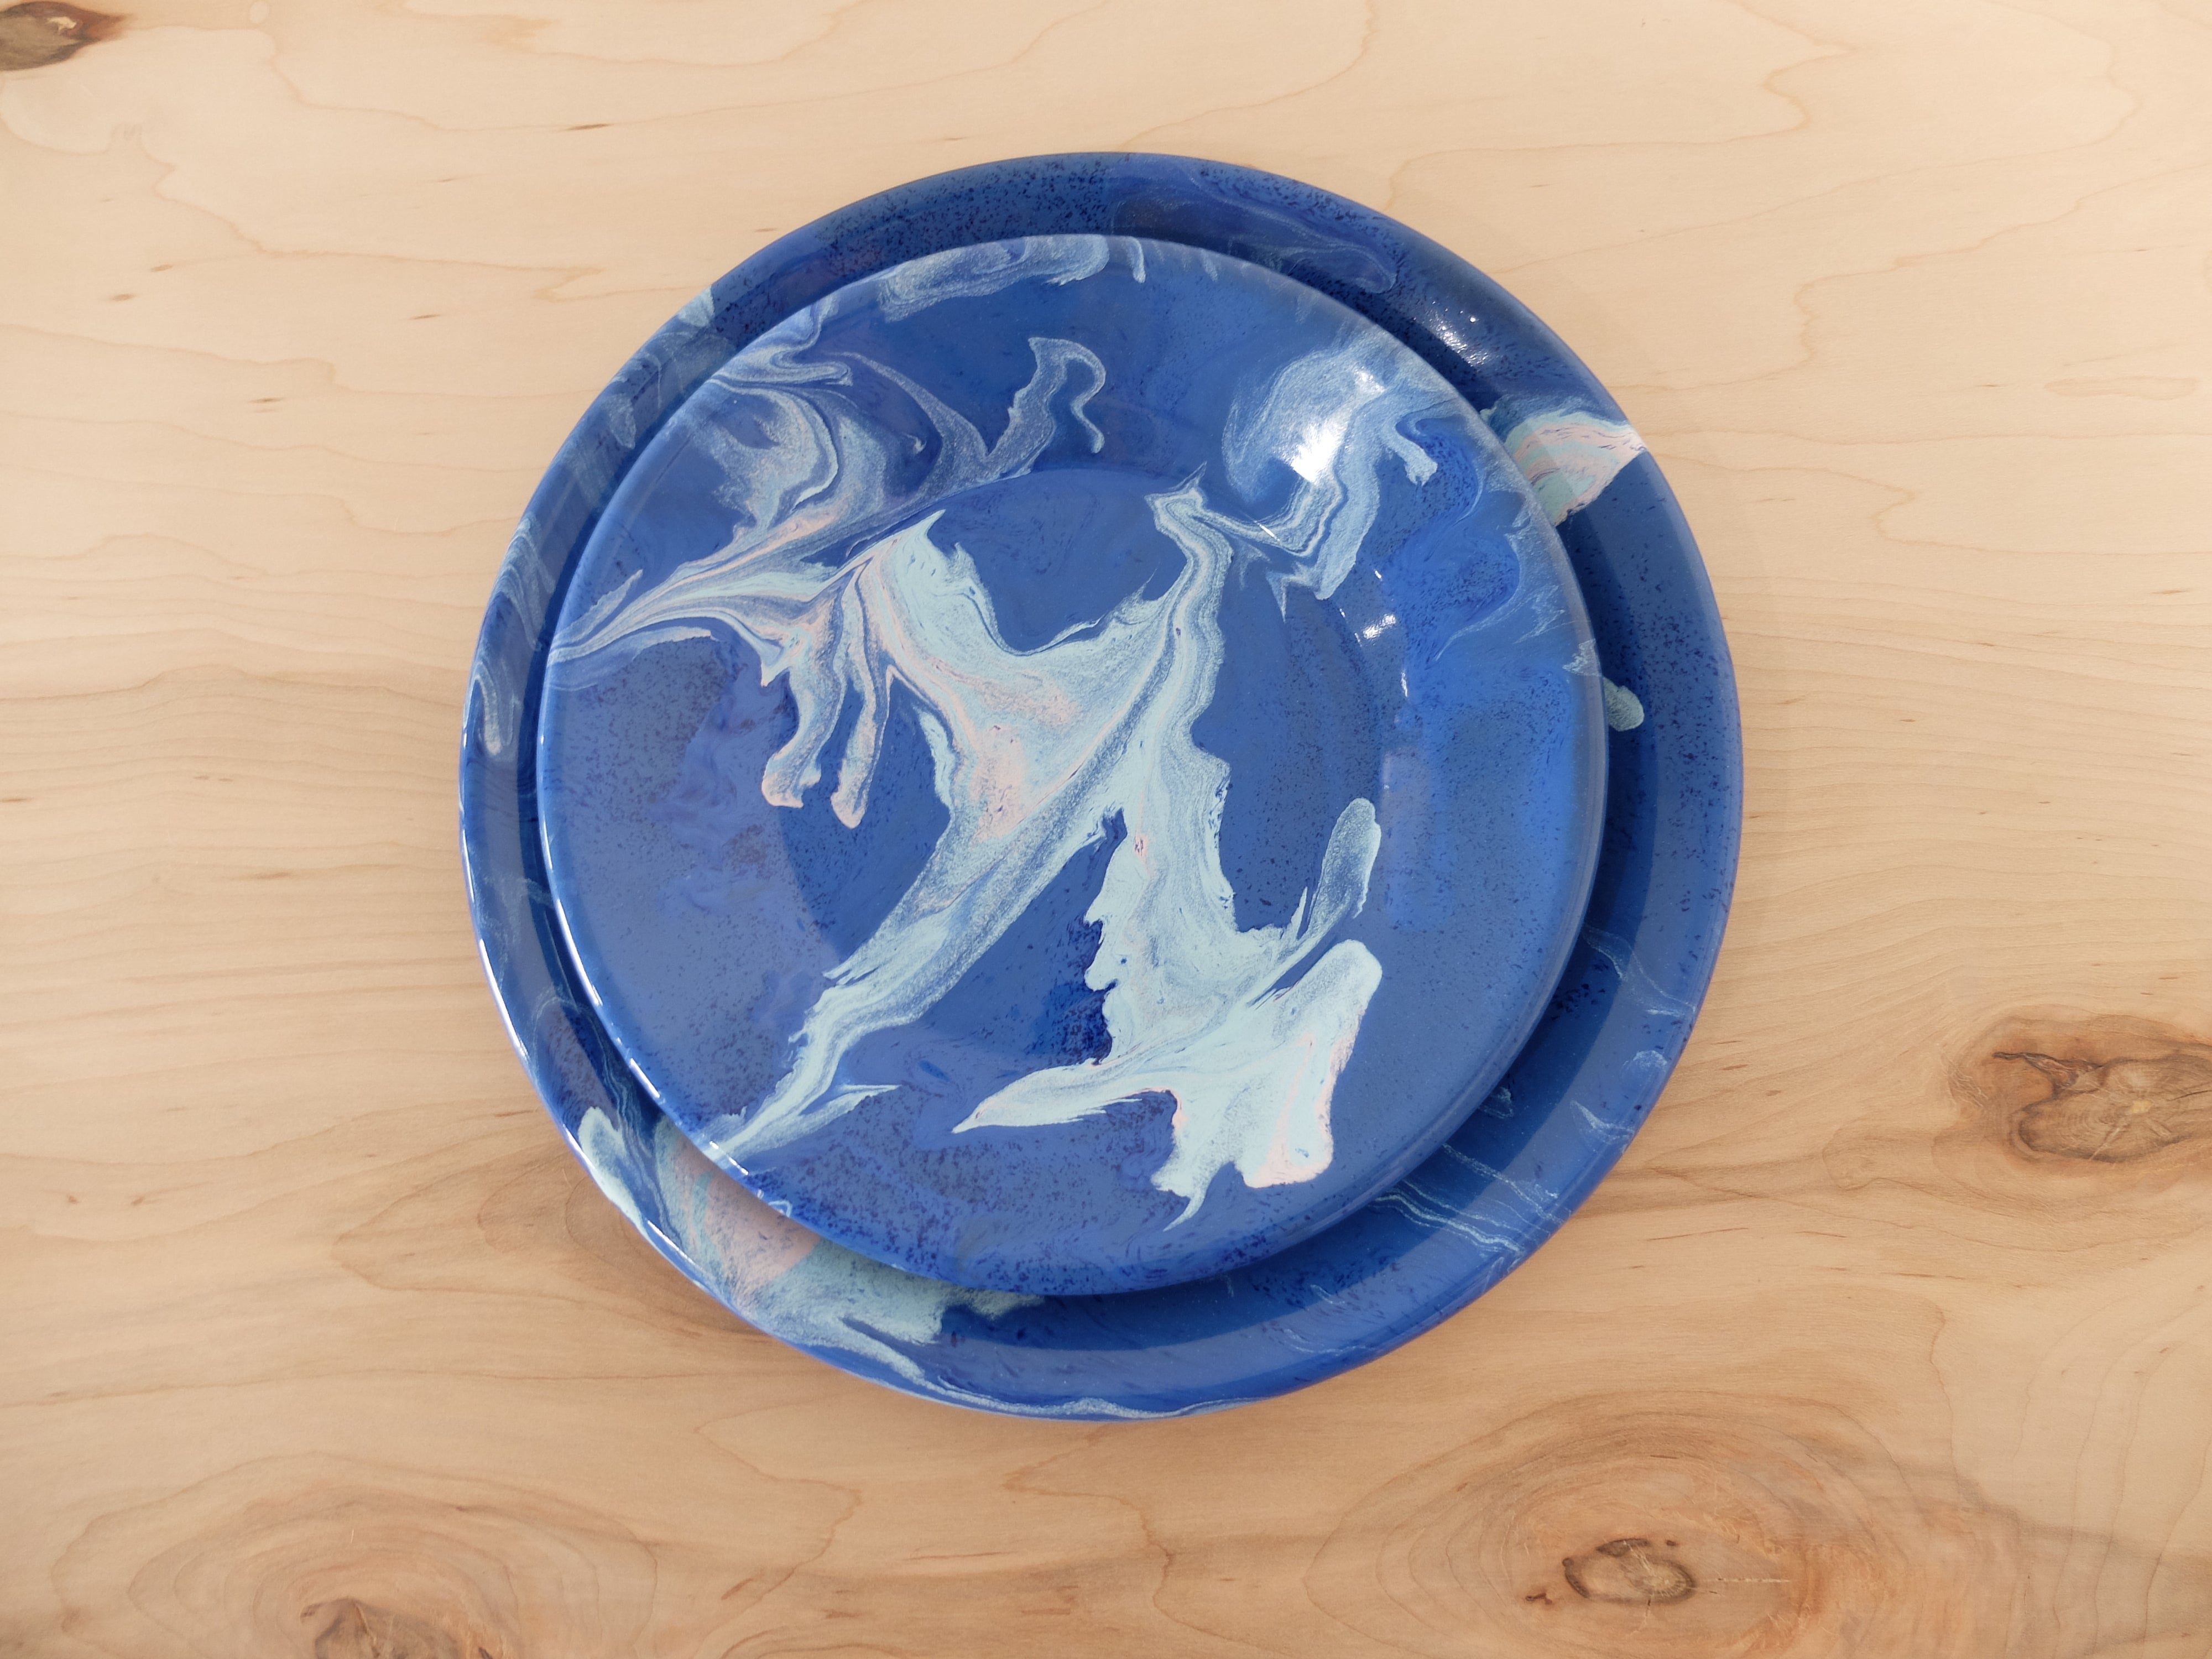 Bornn Multi Swirl Lunch Plate in Cobalt